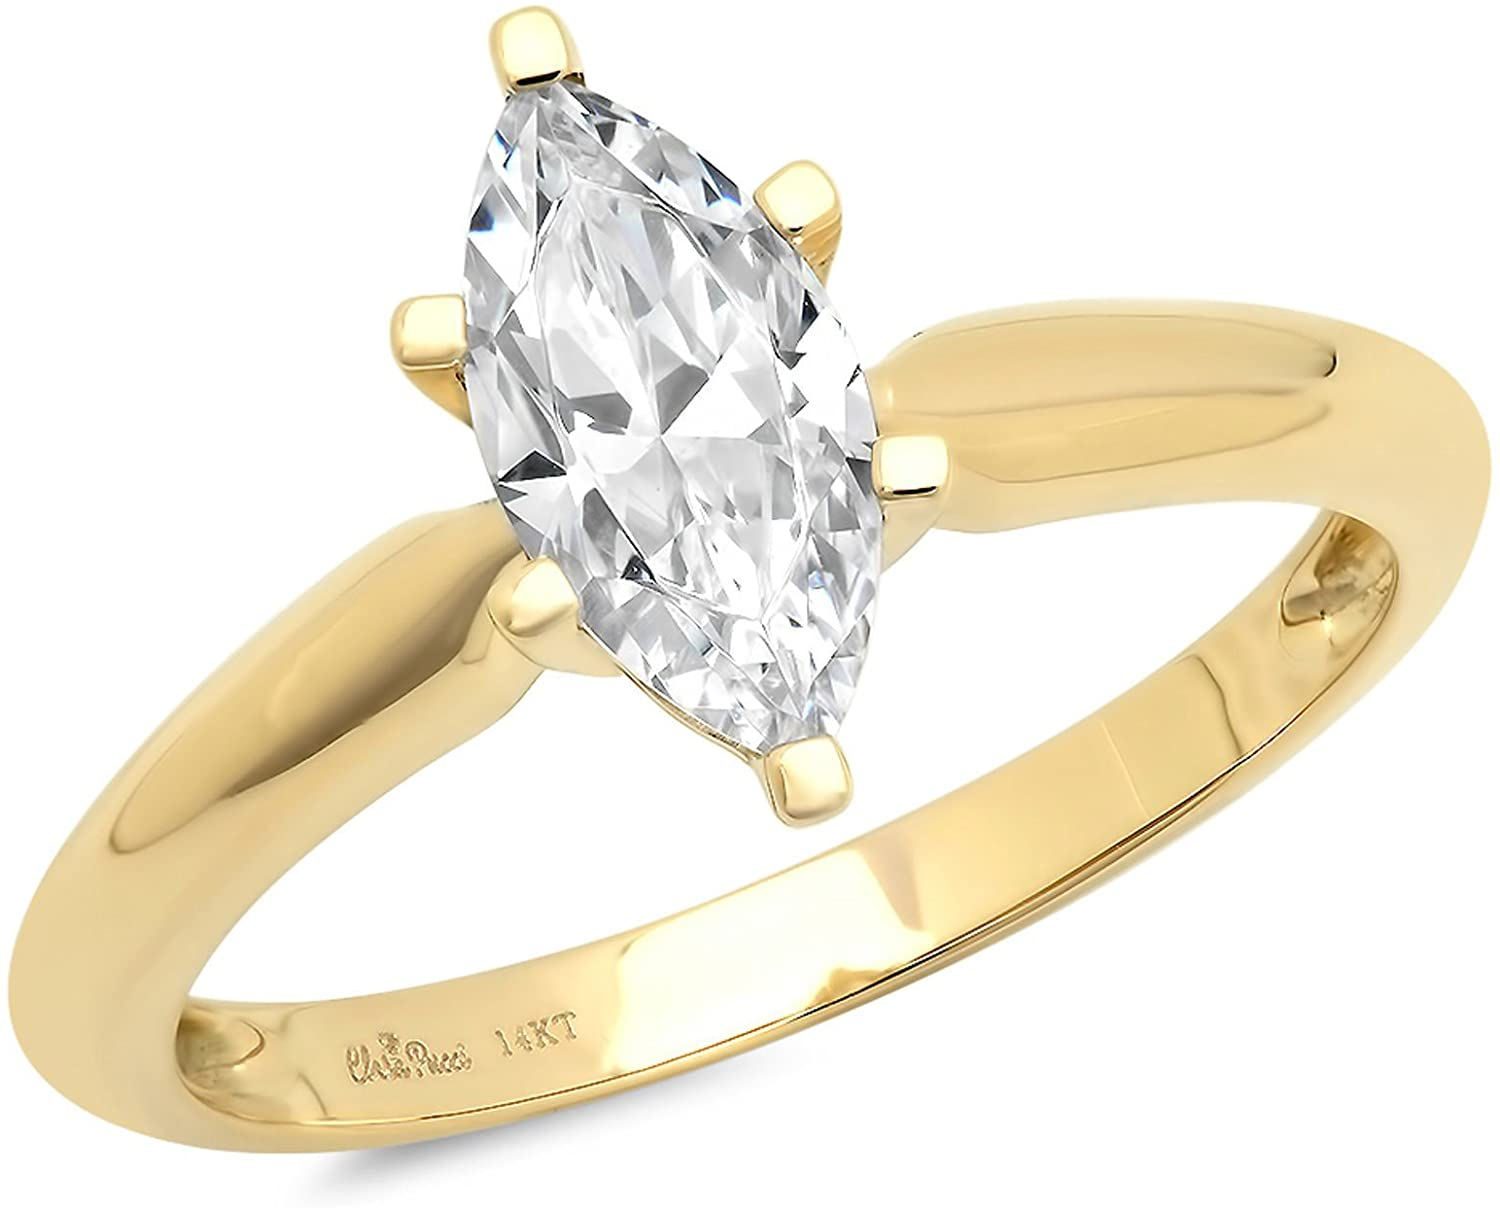 1.0 CT Marquise Brilliant Cut Simulated Diamond CZ Solitaire Engagement Wedding Ring 14k Yellow Gold